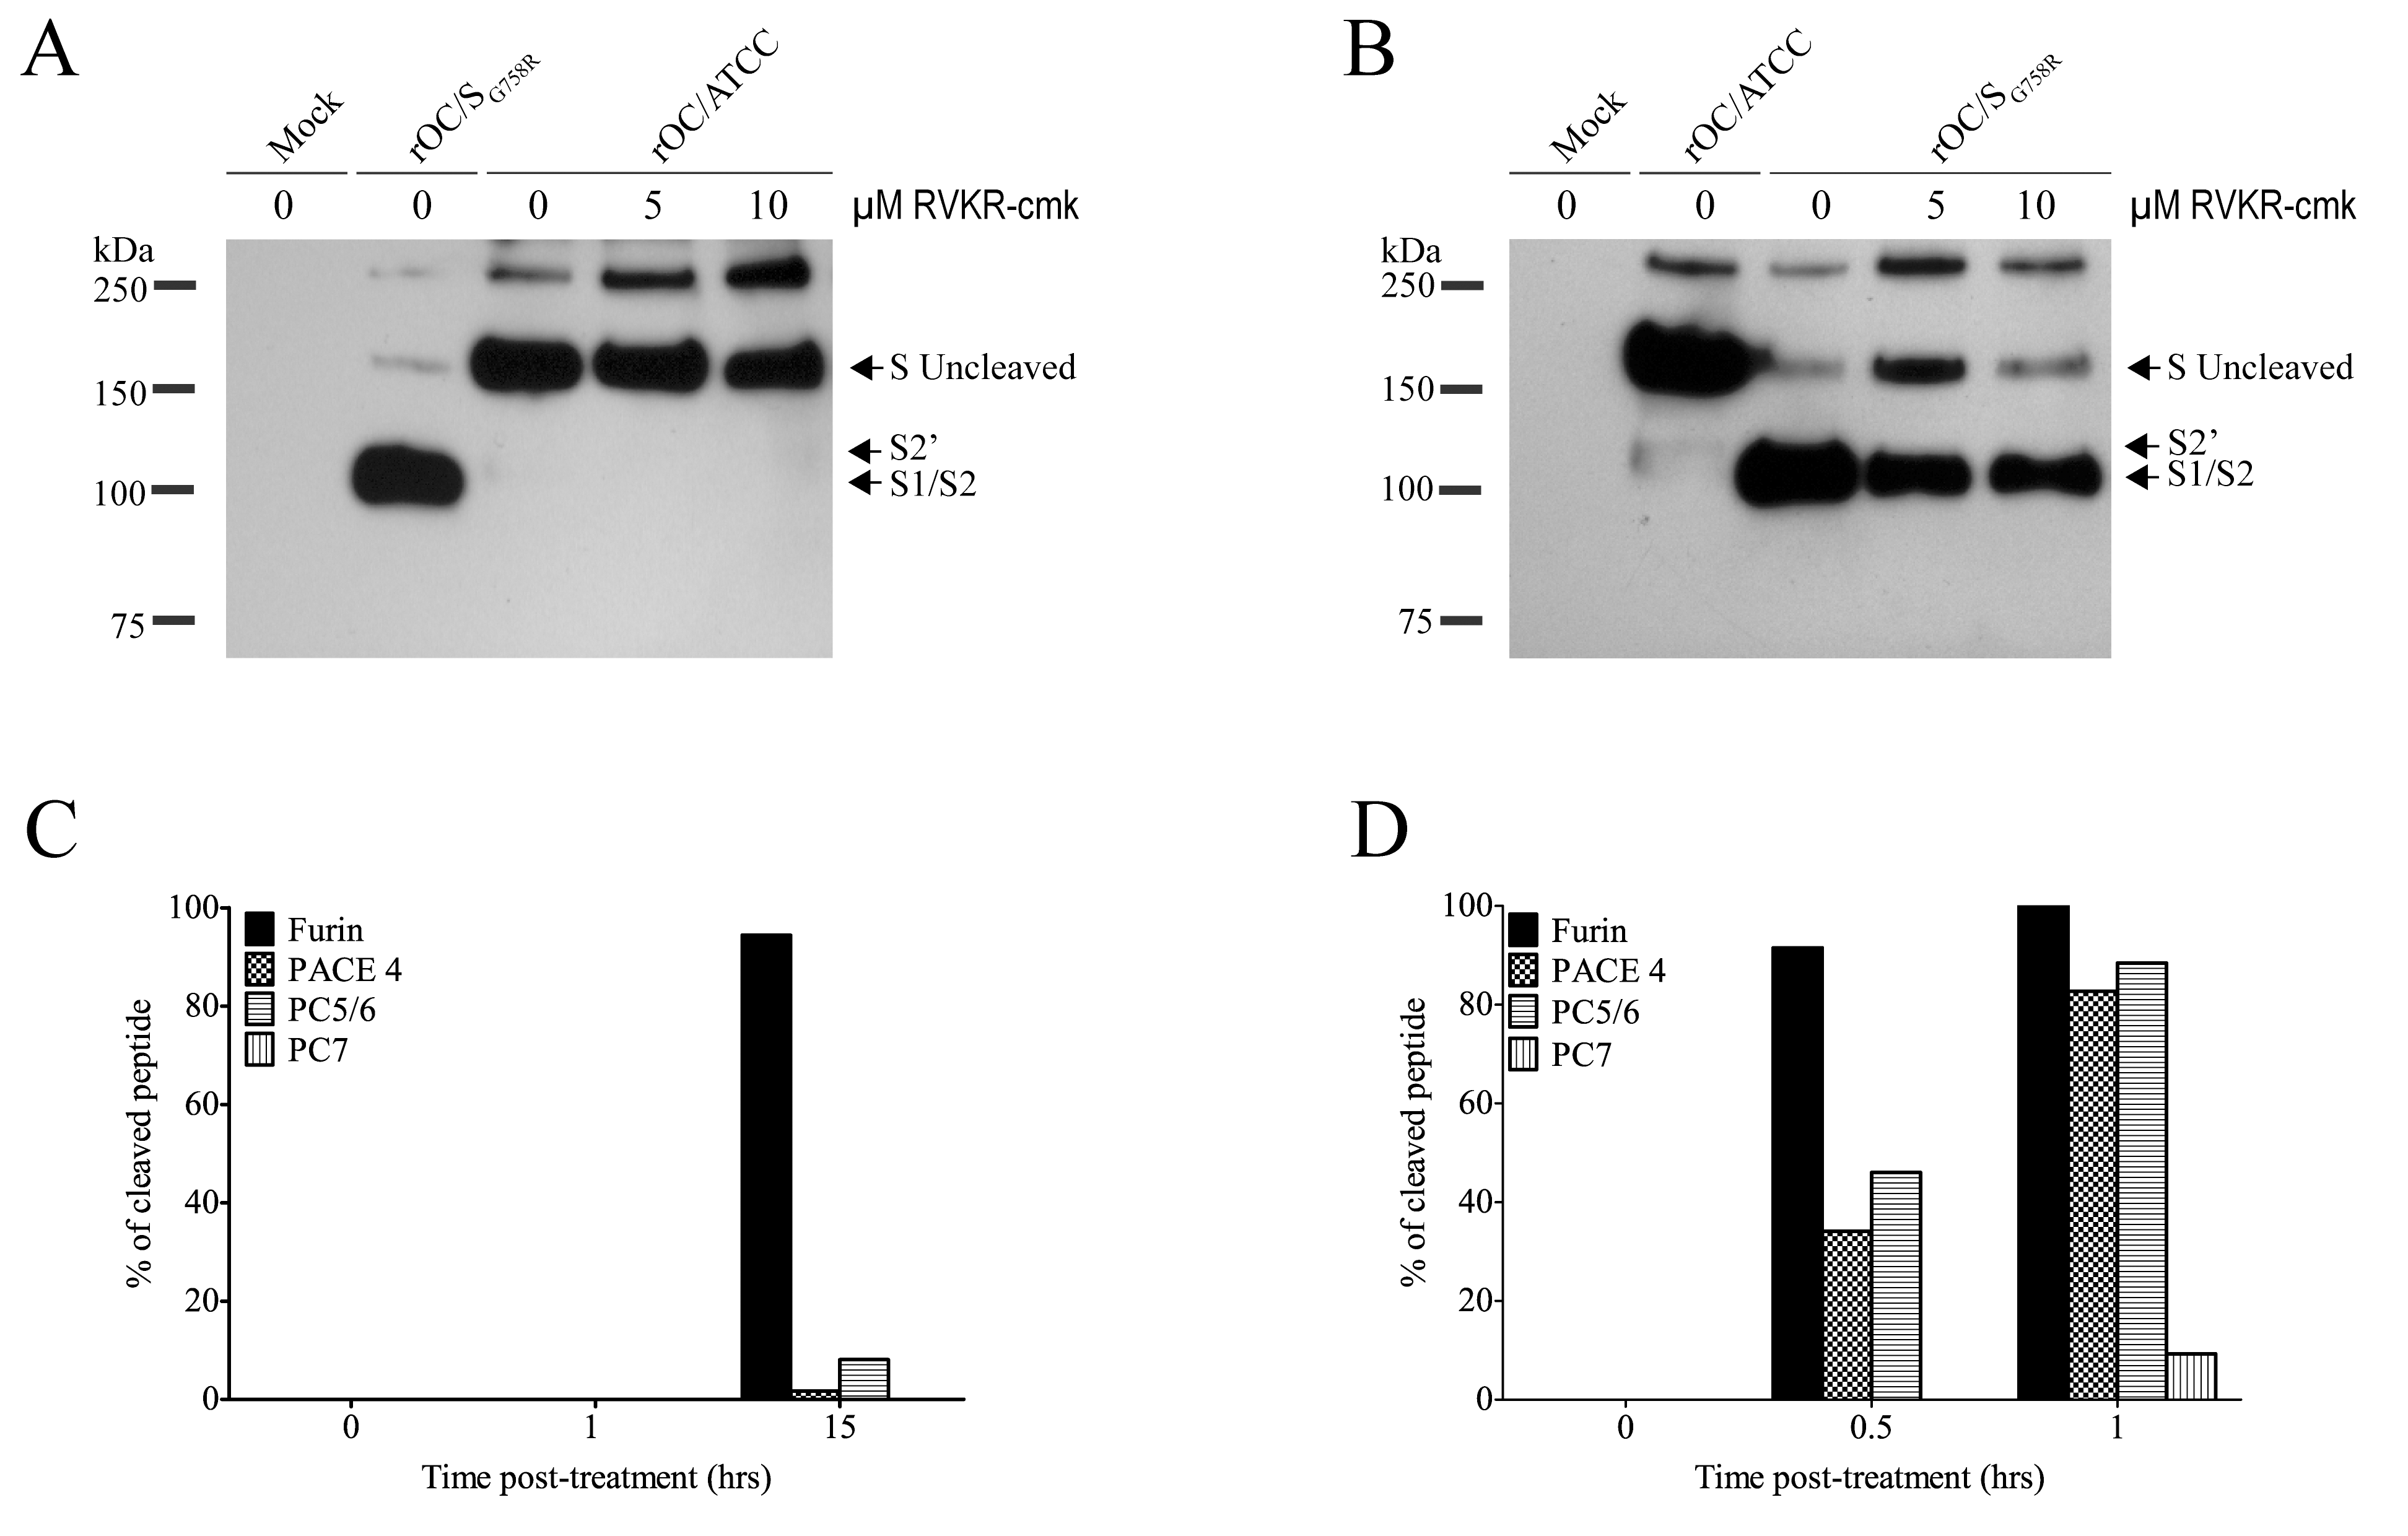 Proprotein convertase as a potential player in S glycoprotein cleavage.